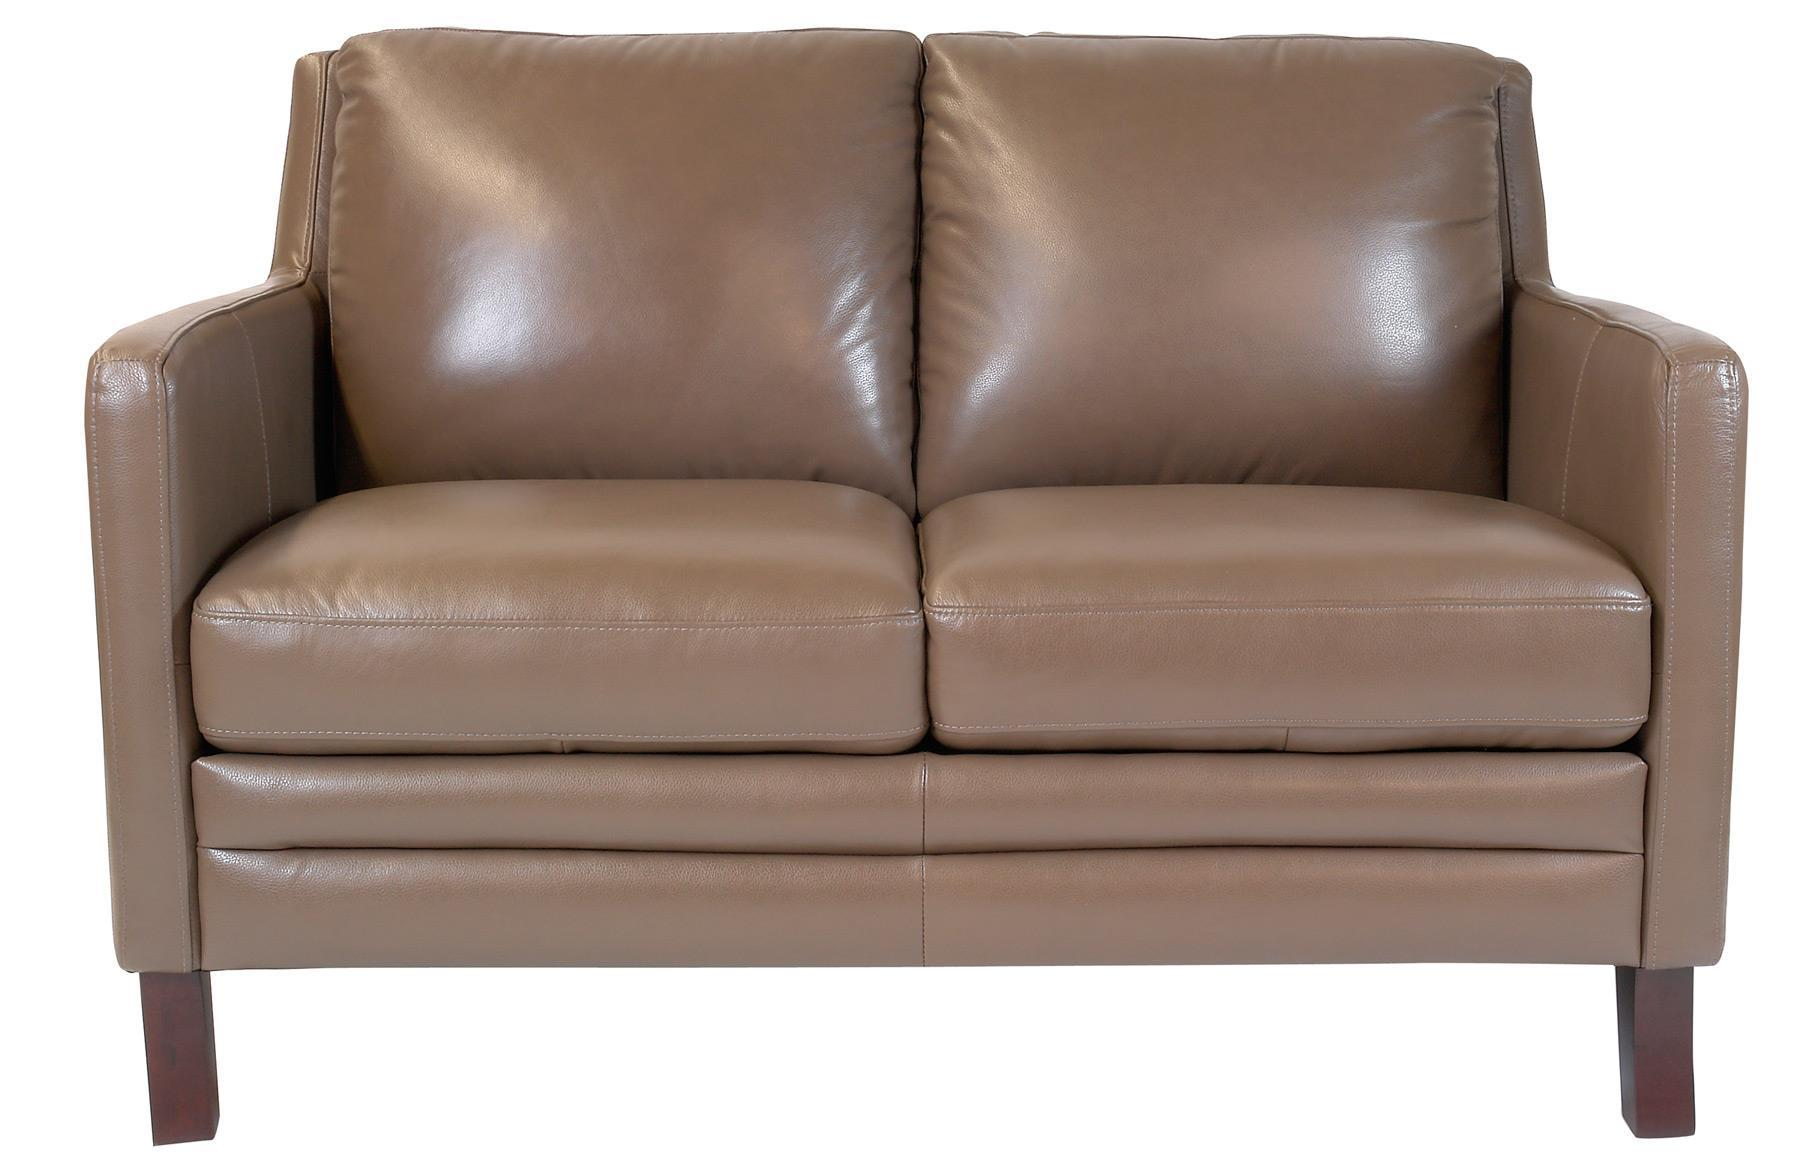 orange living products leather crawford red papaya cindy home classic rooms lusso loveseat tan loveseats